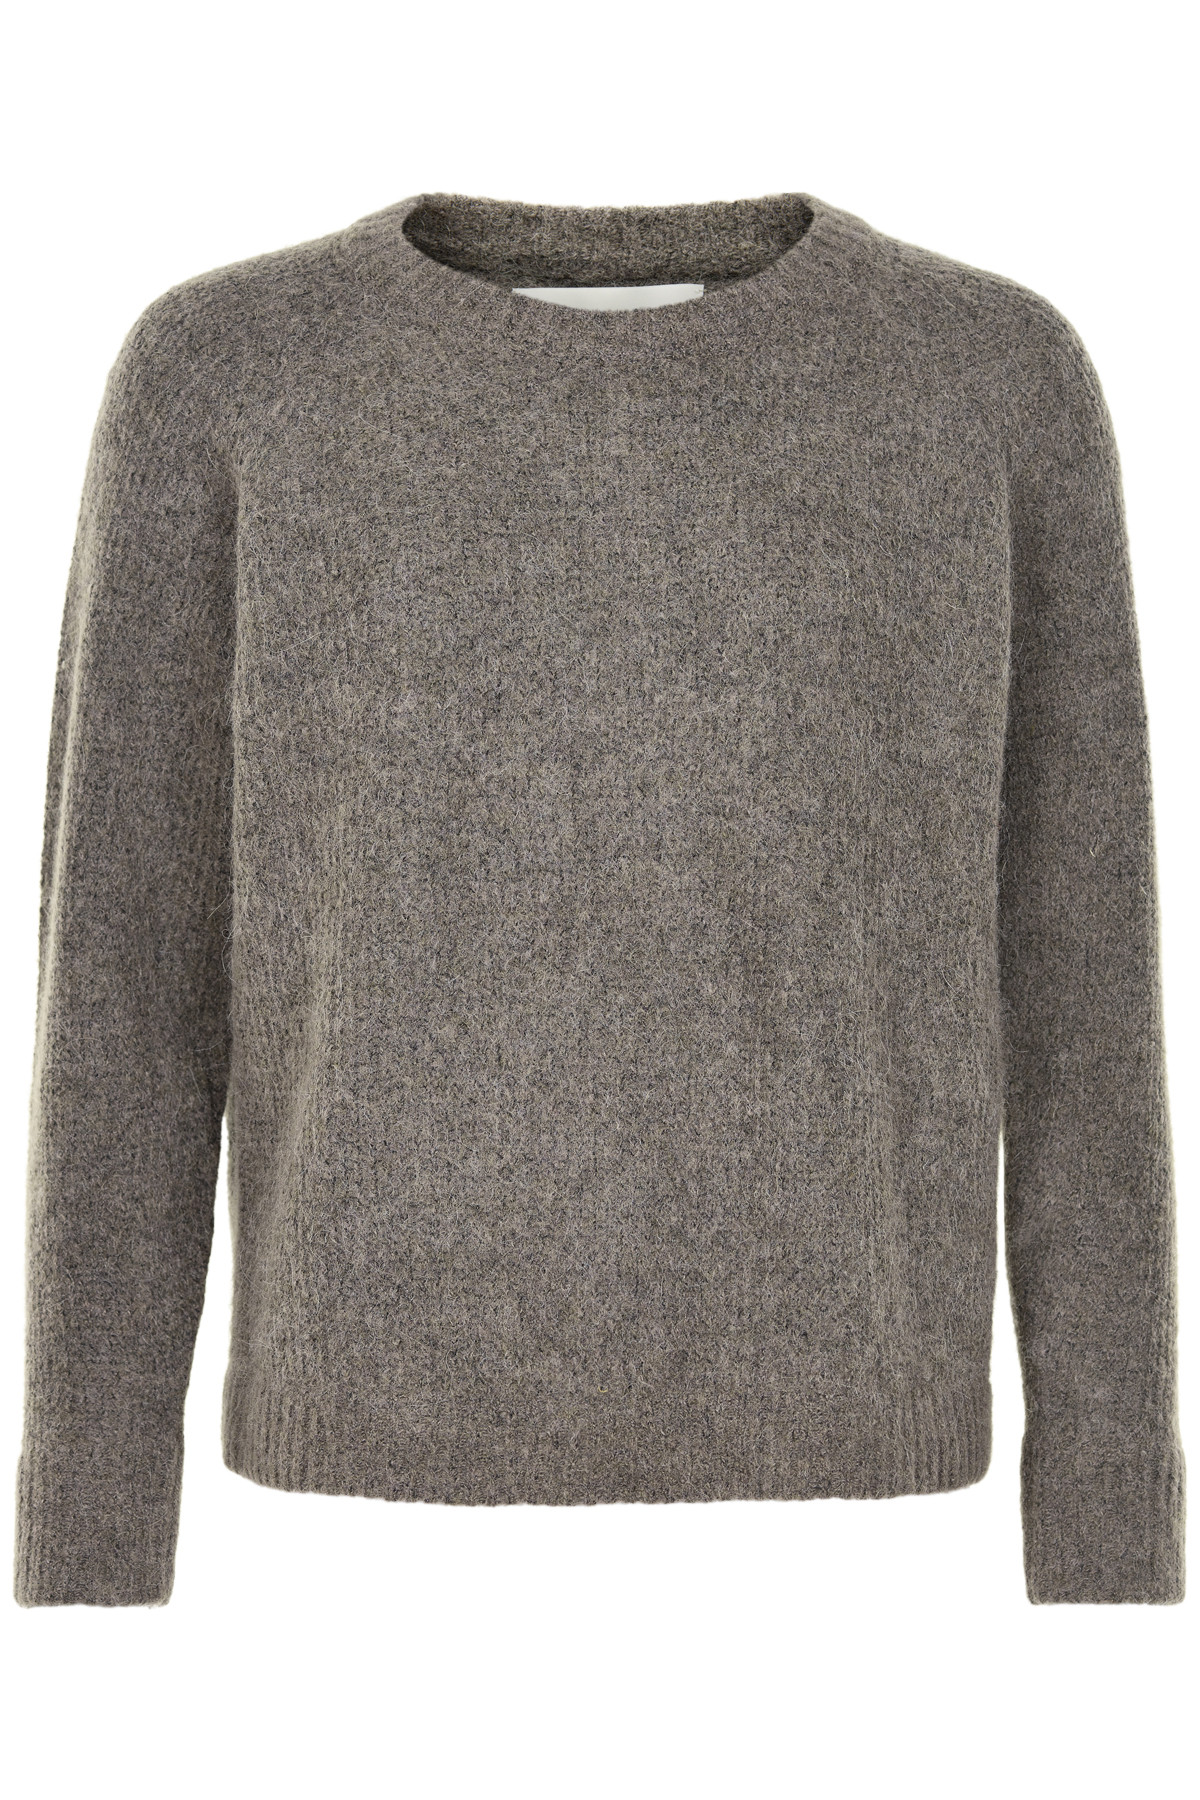 Image of   AND LESS ALBAMBINA SWEATER 5519211 W (Walnut, S)